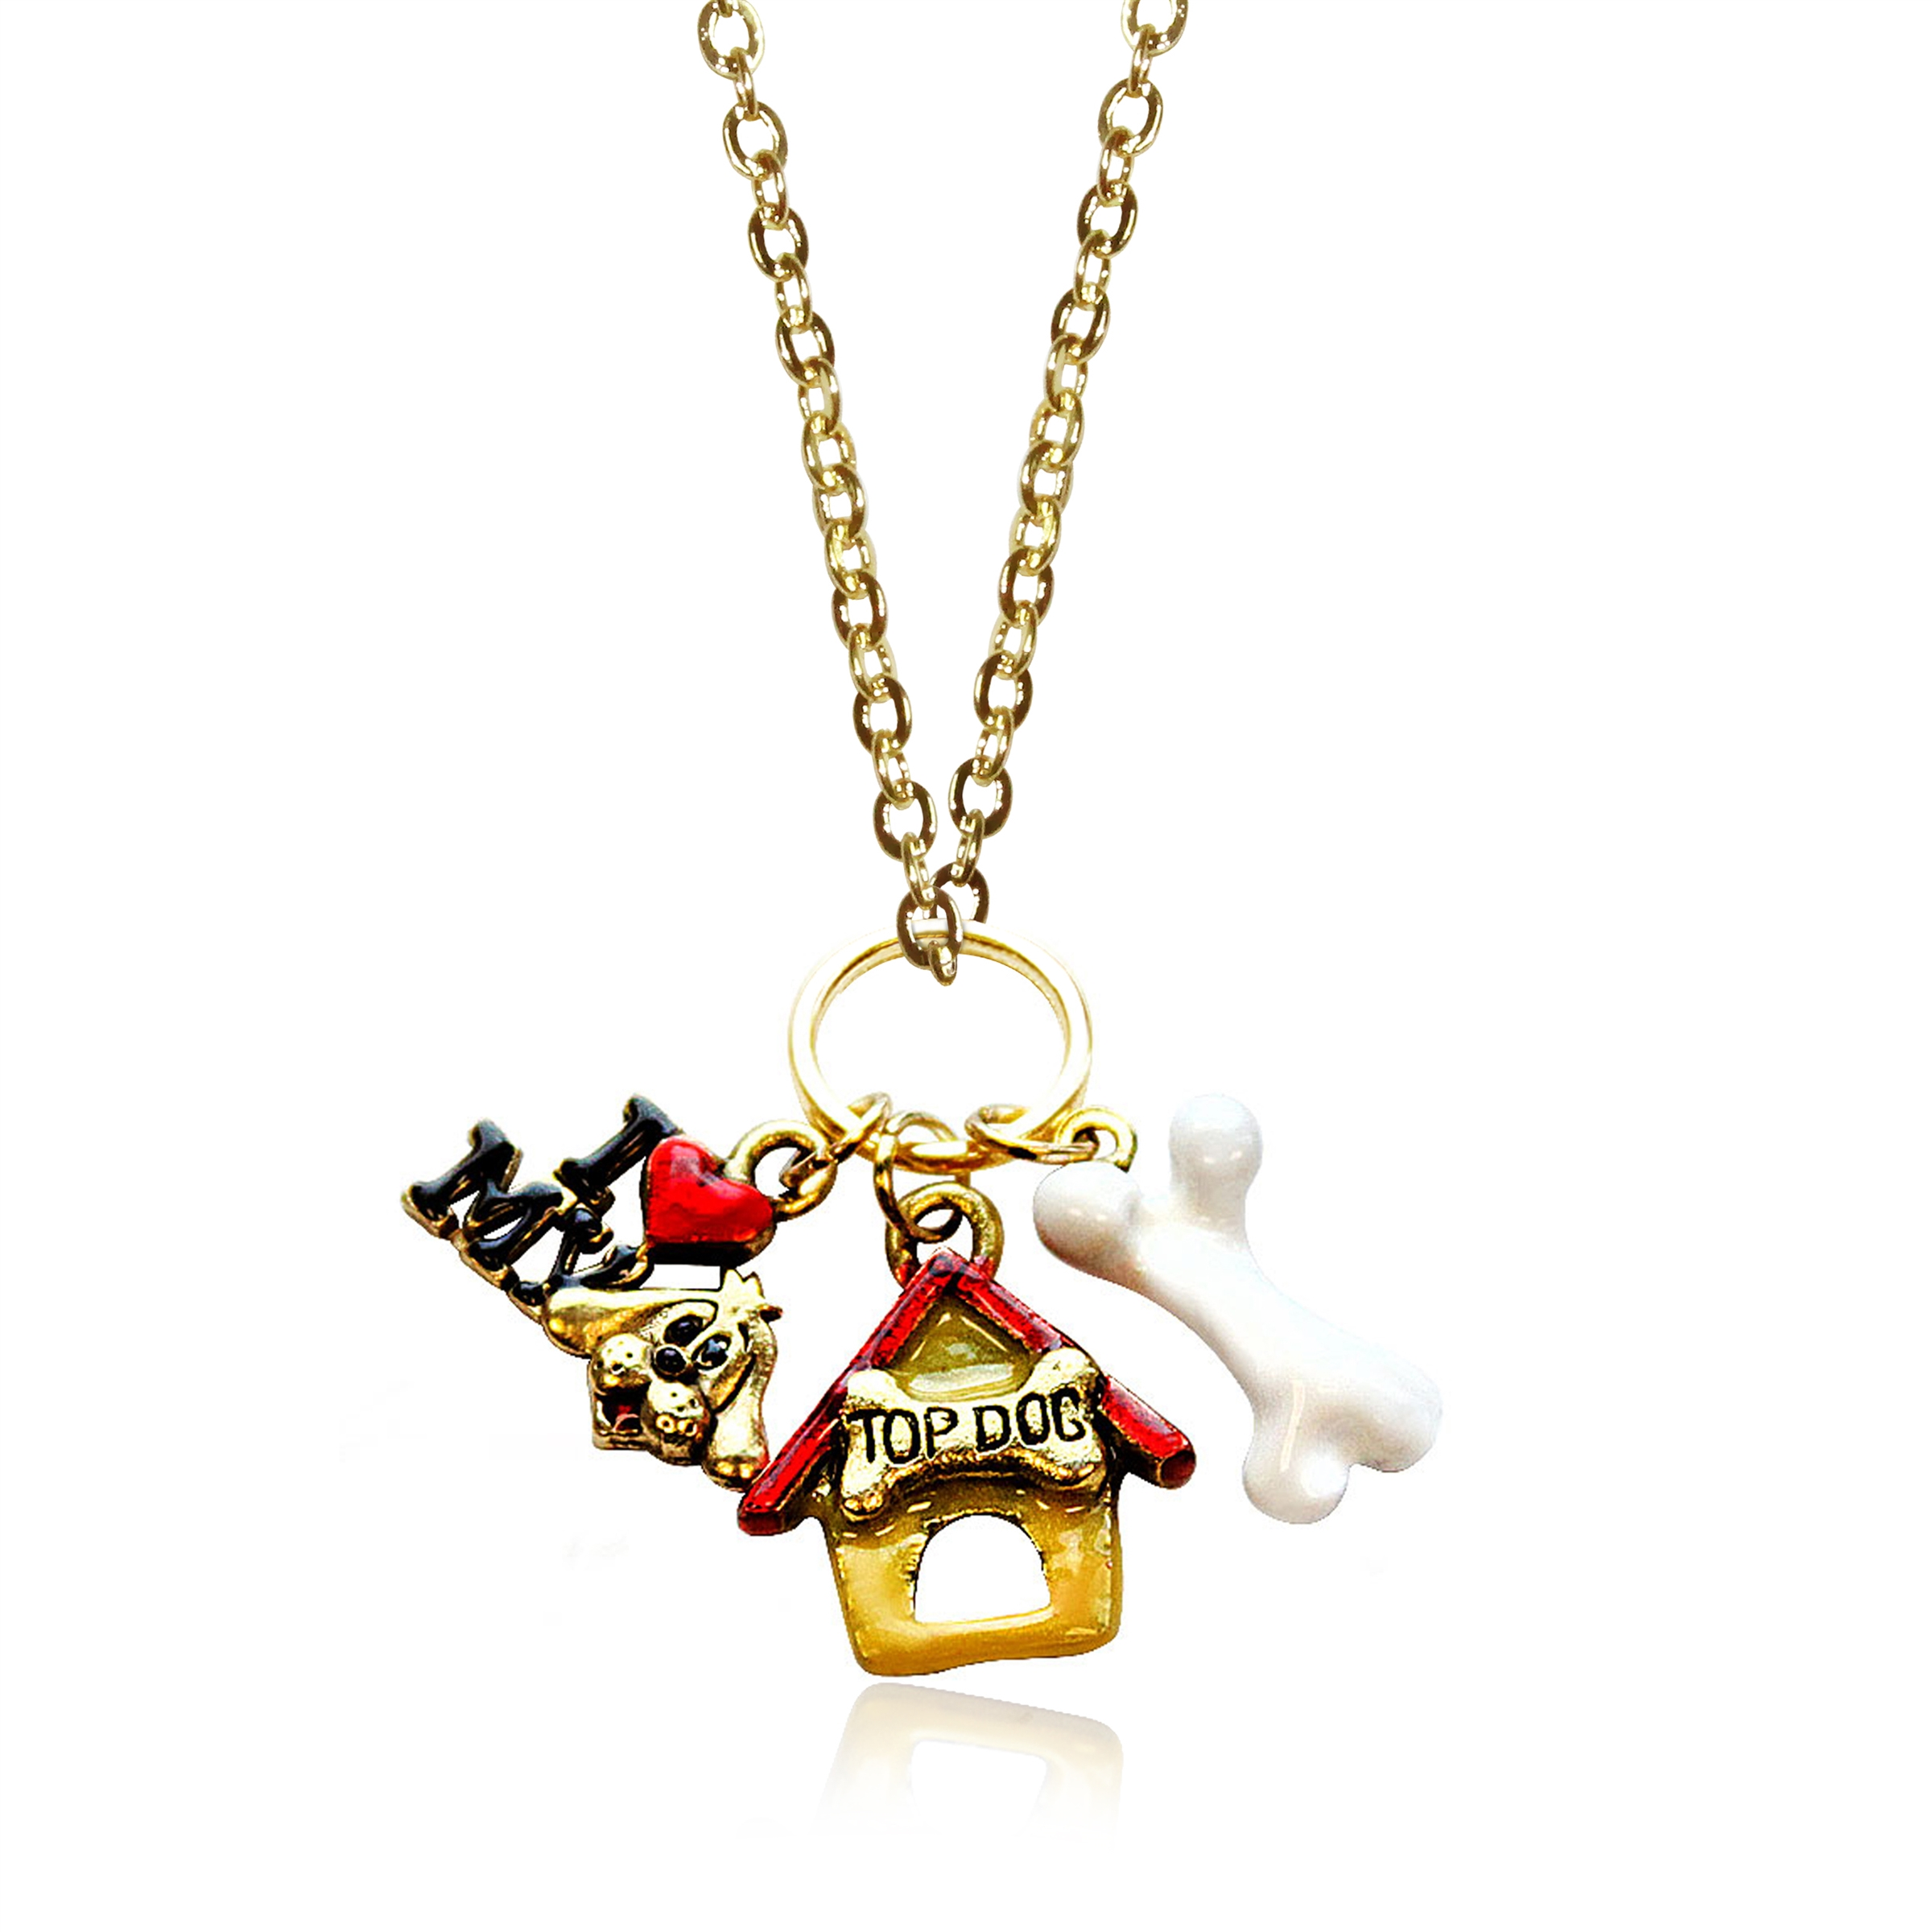 house of c loco feline cat necklaces jewellery gothic charm necklace index kittens undead lover acrylic black cherry the